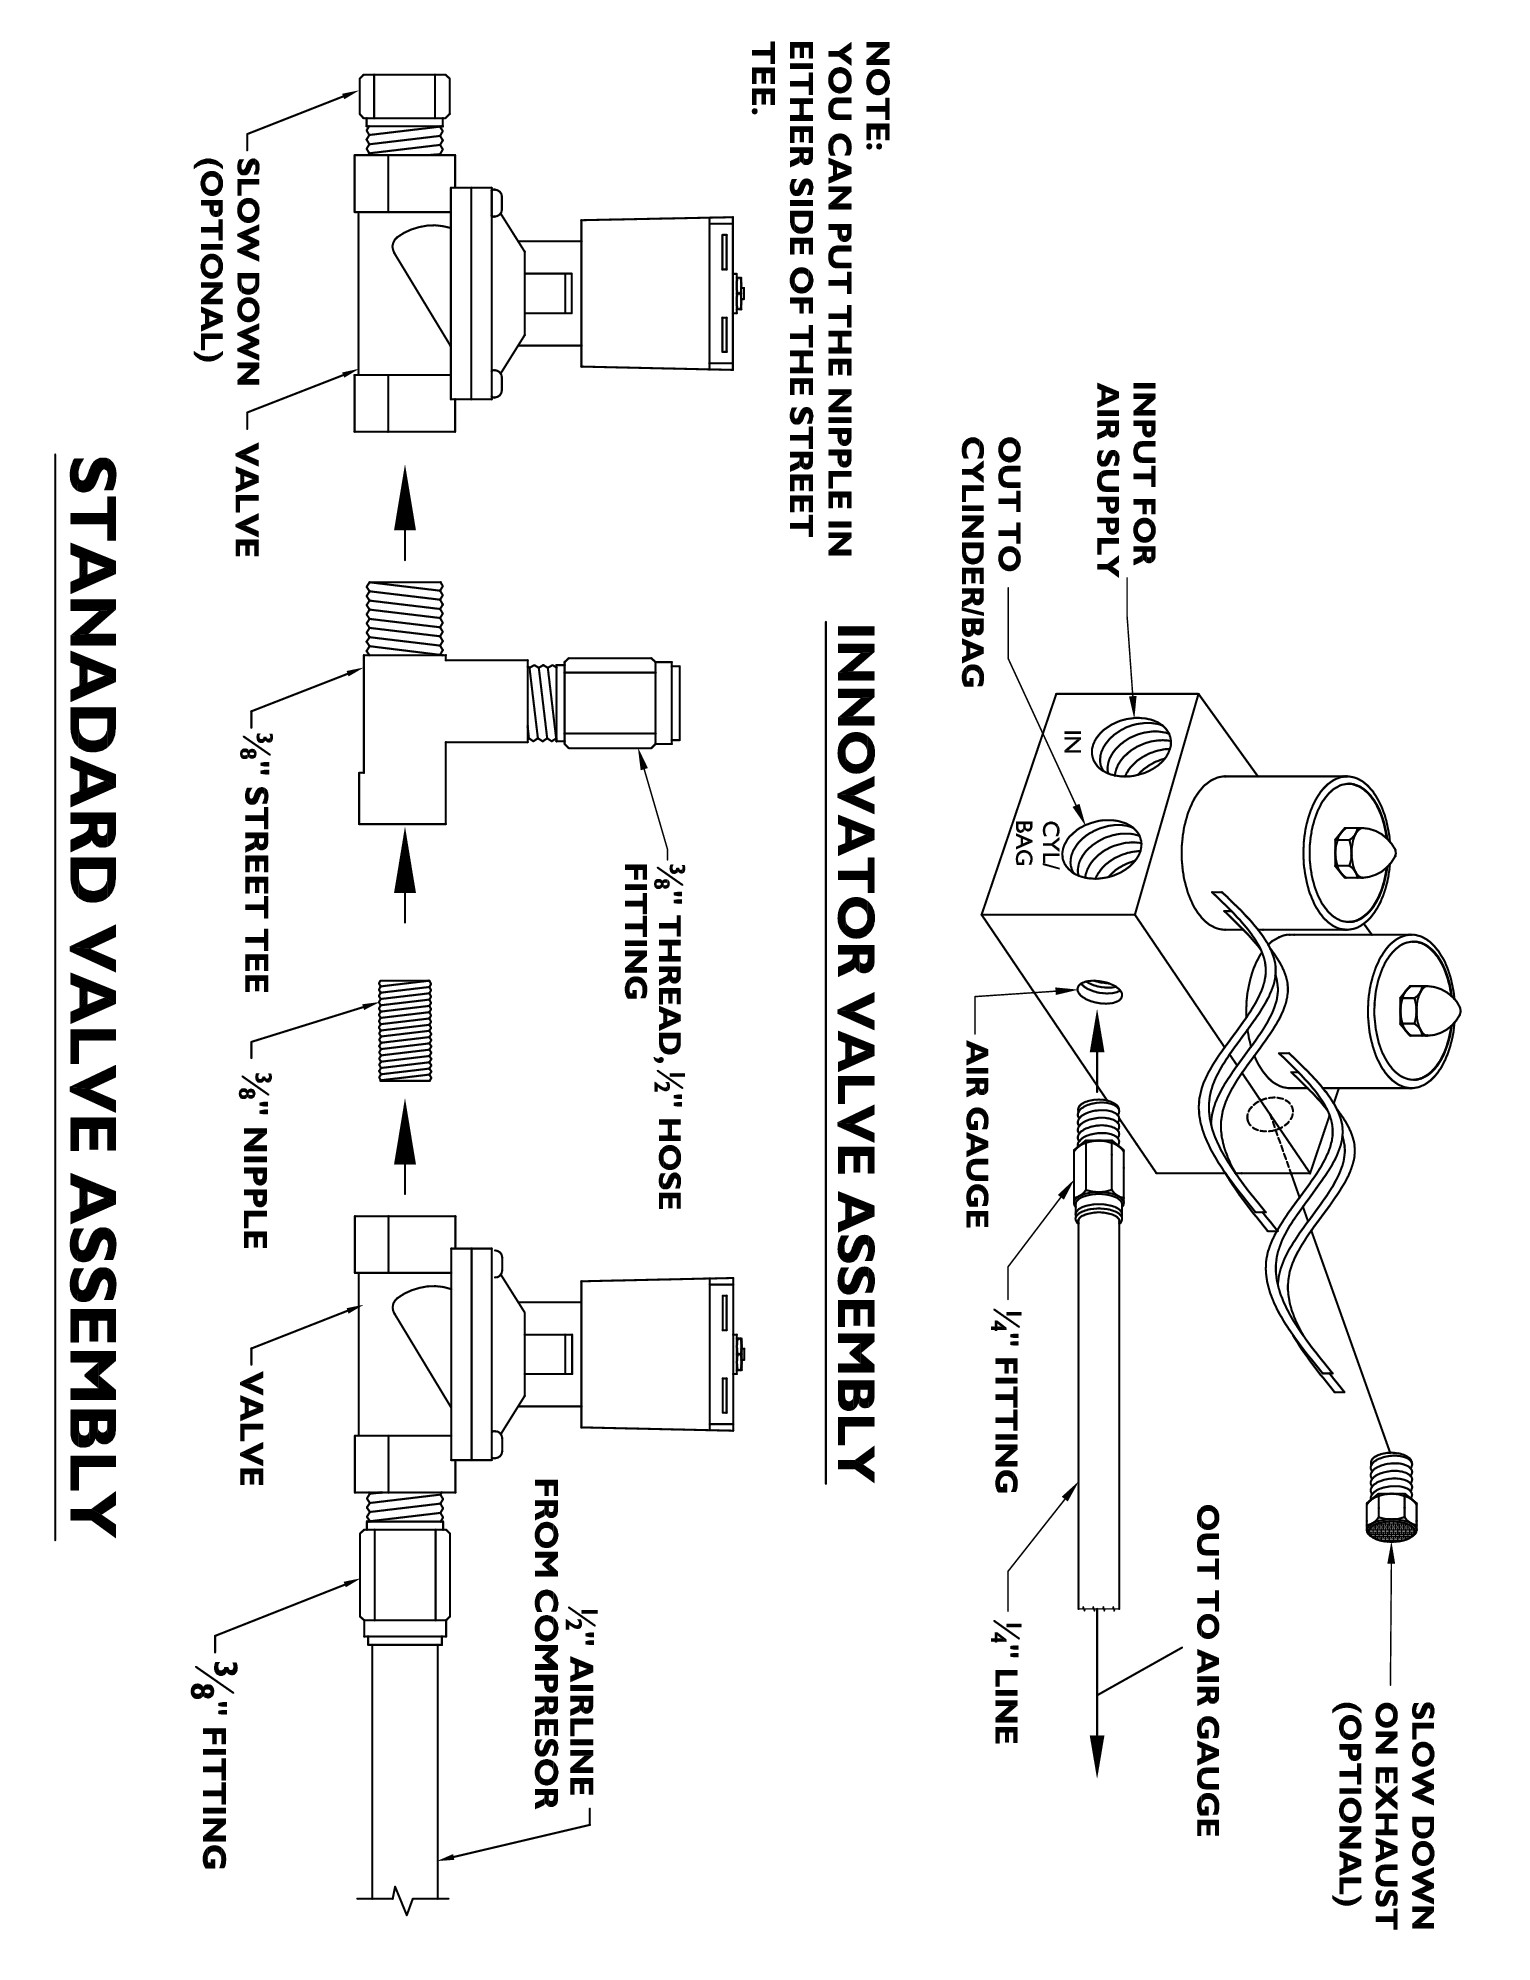 Custom Hydraulic Tanks | Wiring Diagram Database